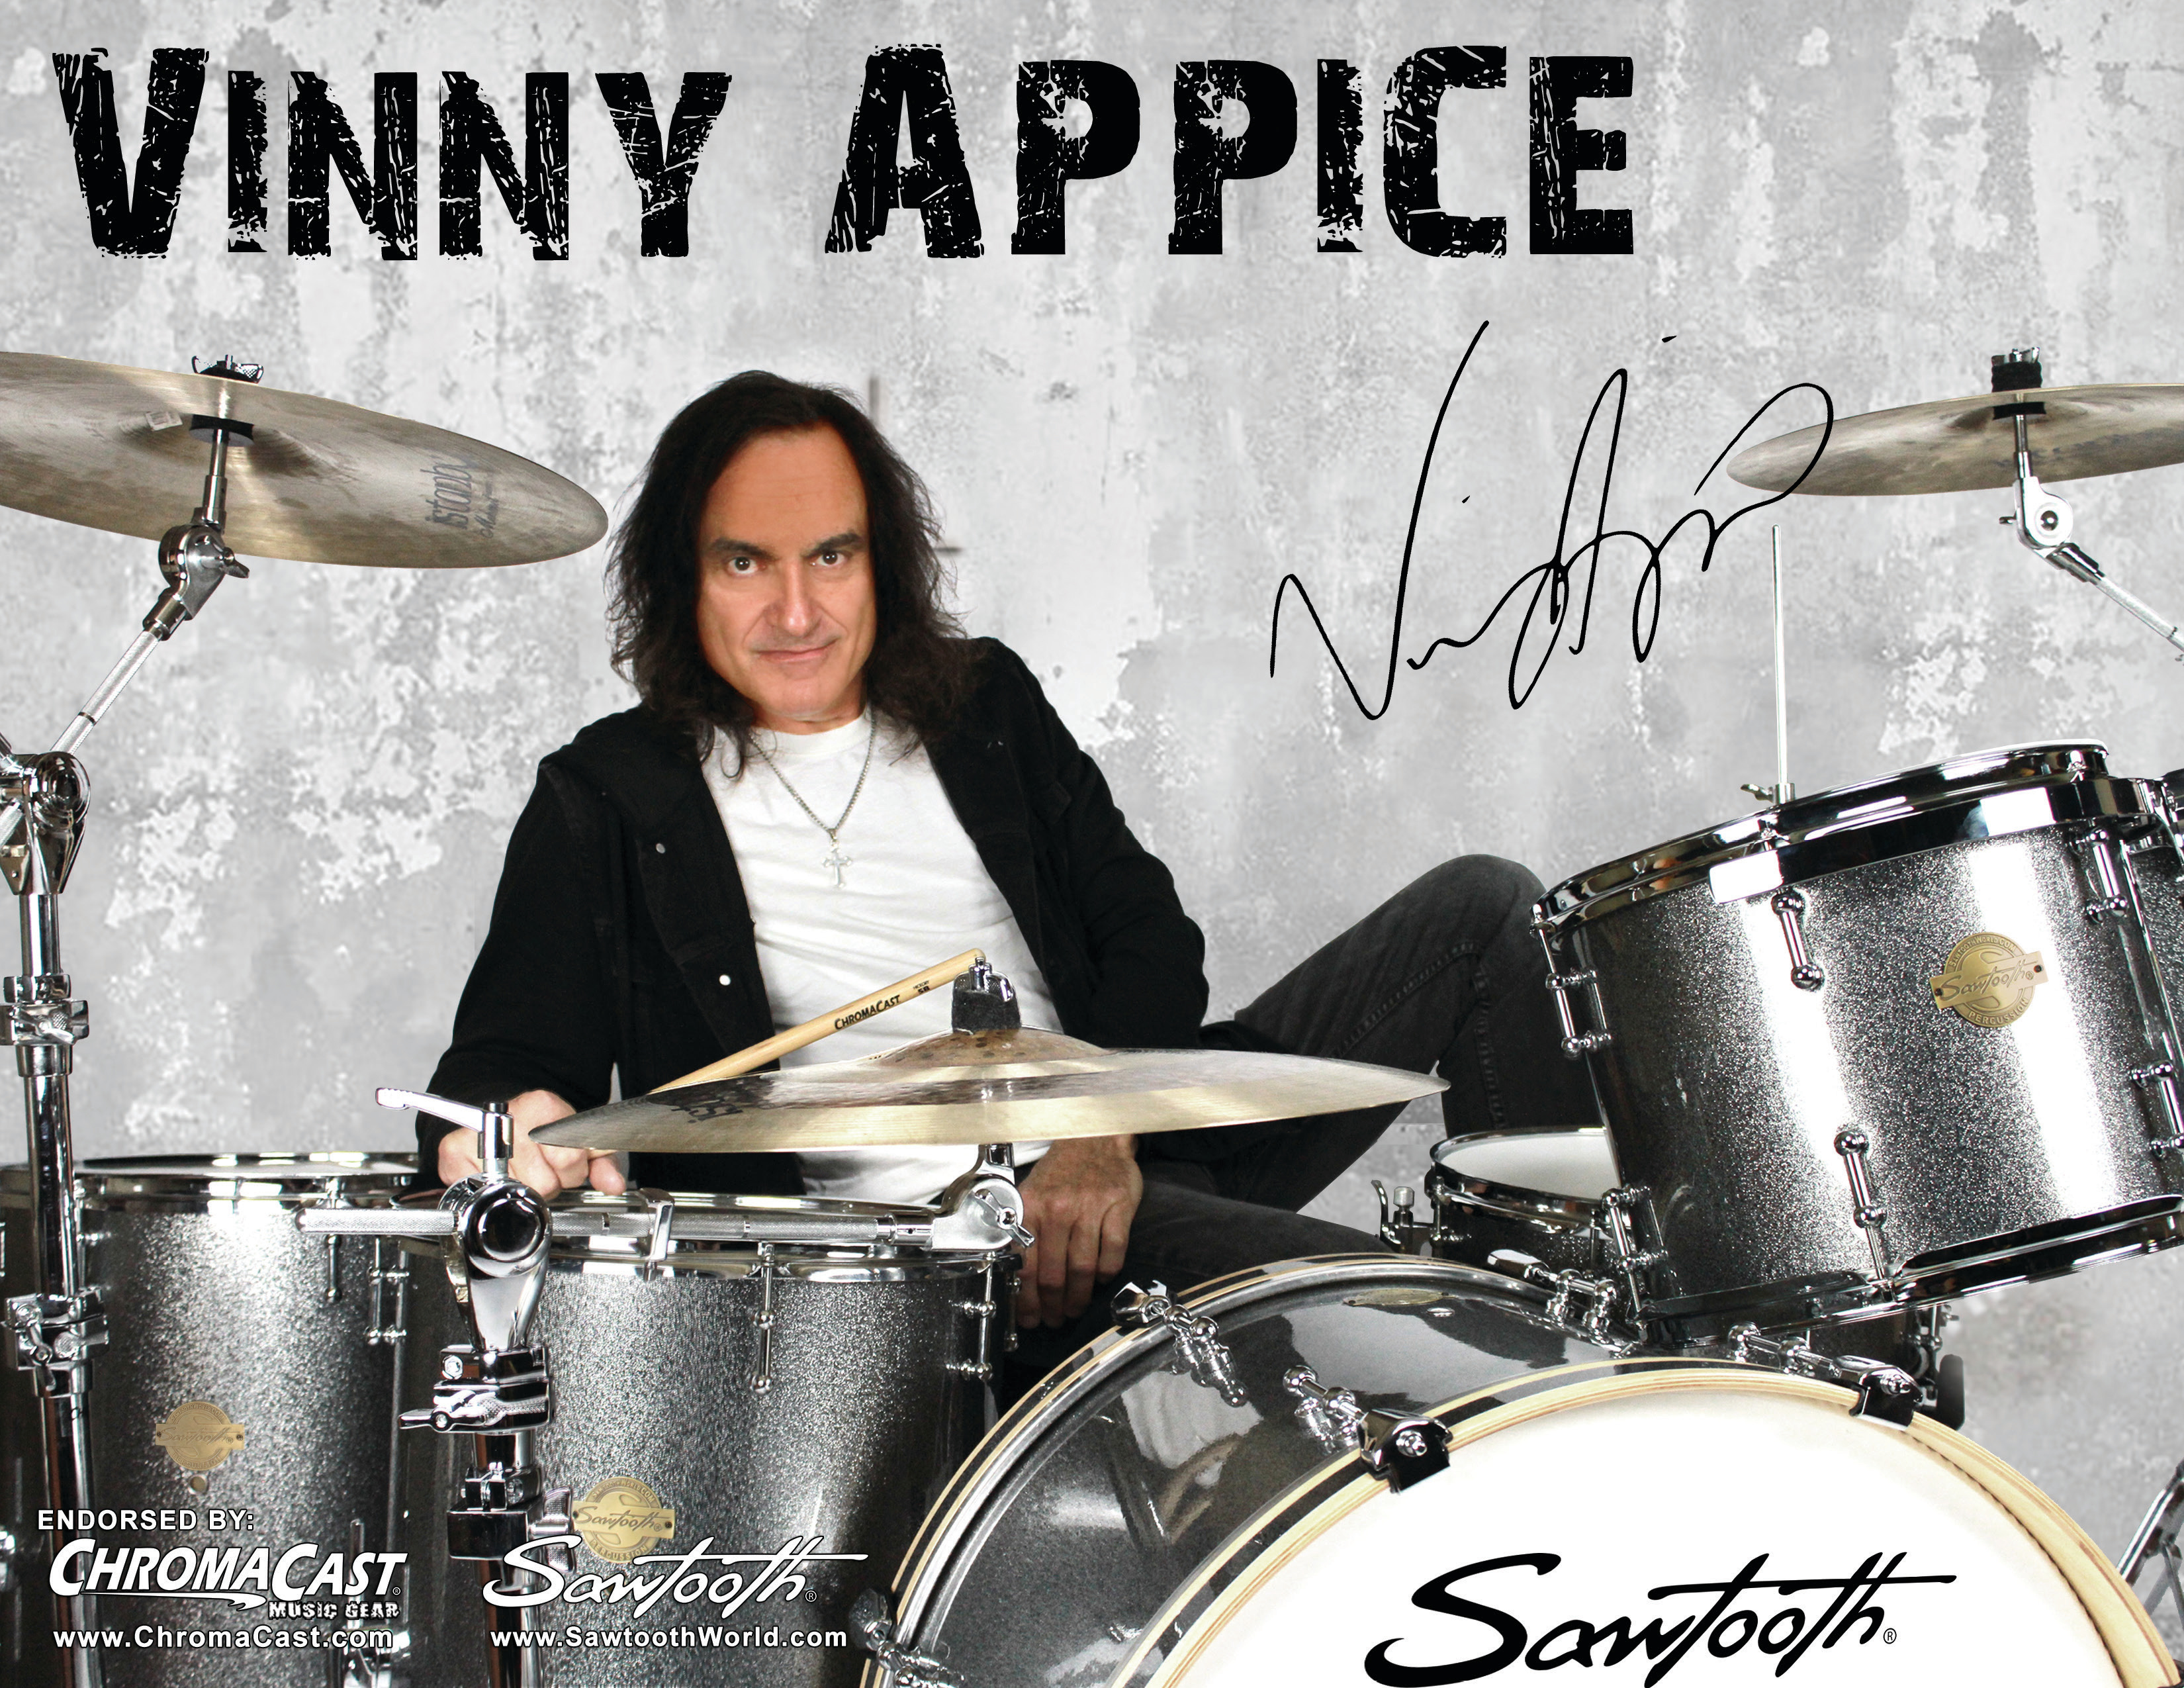 Signed Vinny Appice Poster